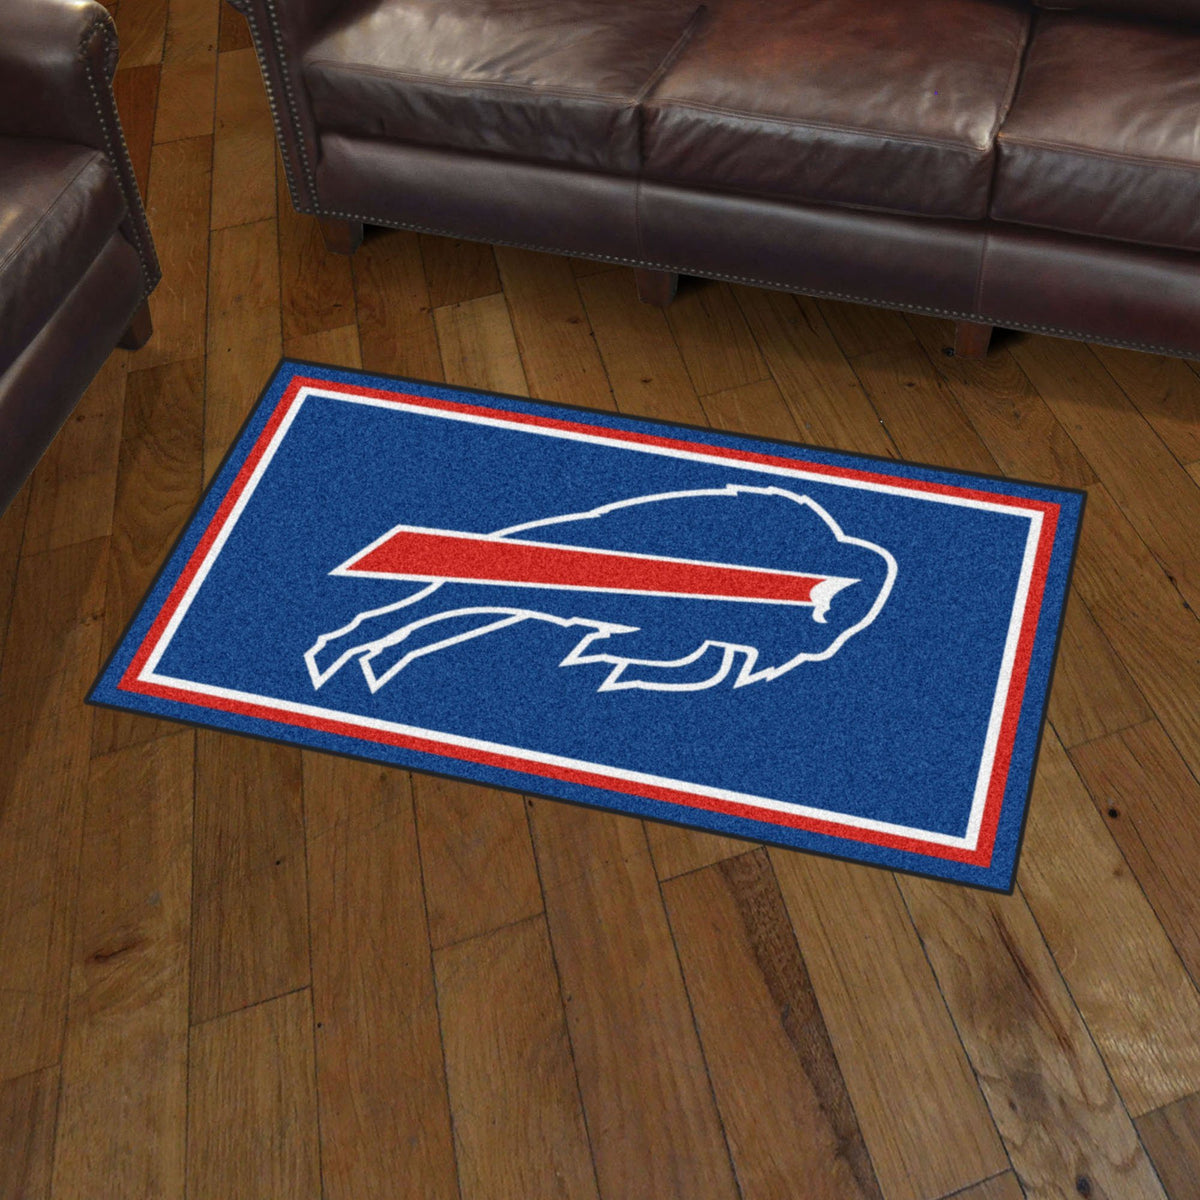 NFL - 3' x 5' Rug NFL Mats, Plush Rugs, 3x5 Rug, NFL, Home Fan Mats Buffalo Bills